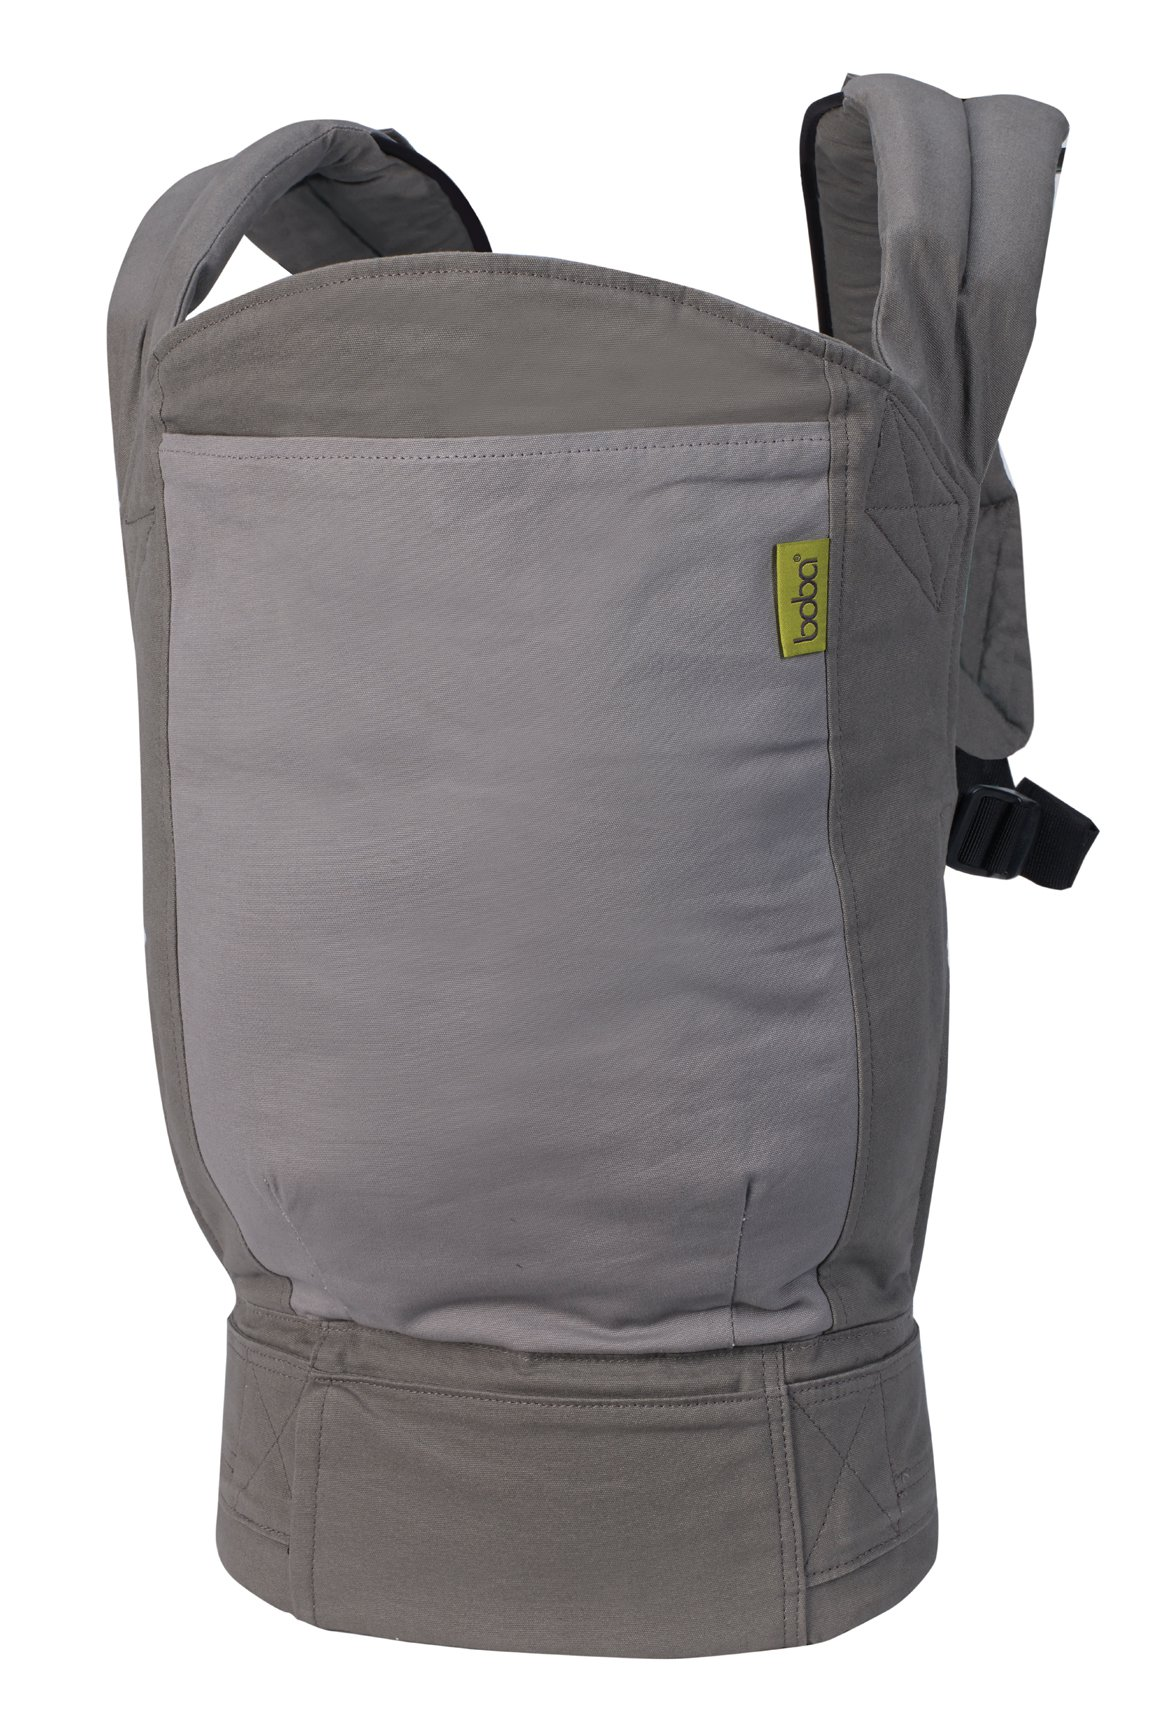 http://slingi.ru/products_pictures/61/large/1459943757_001-boba-carrier-dusk-1152-x-1728.jpg